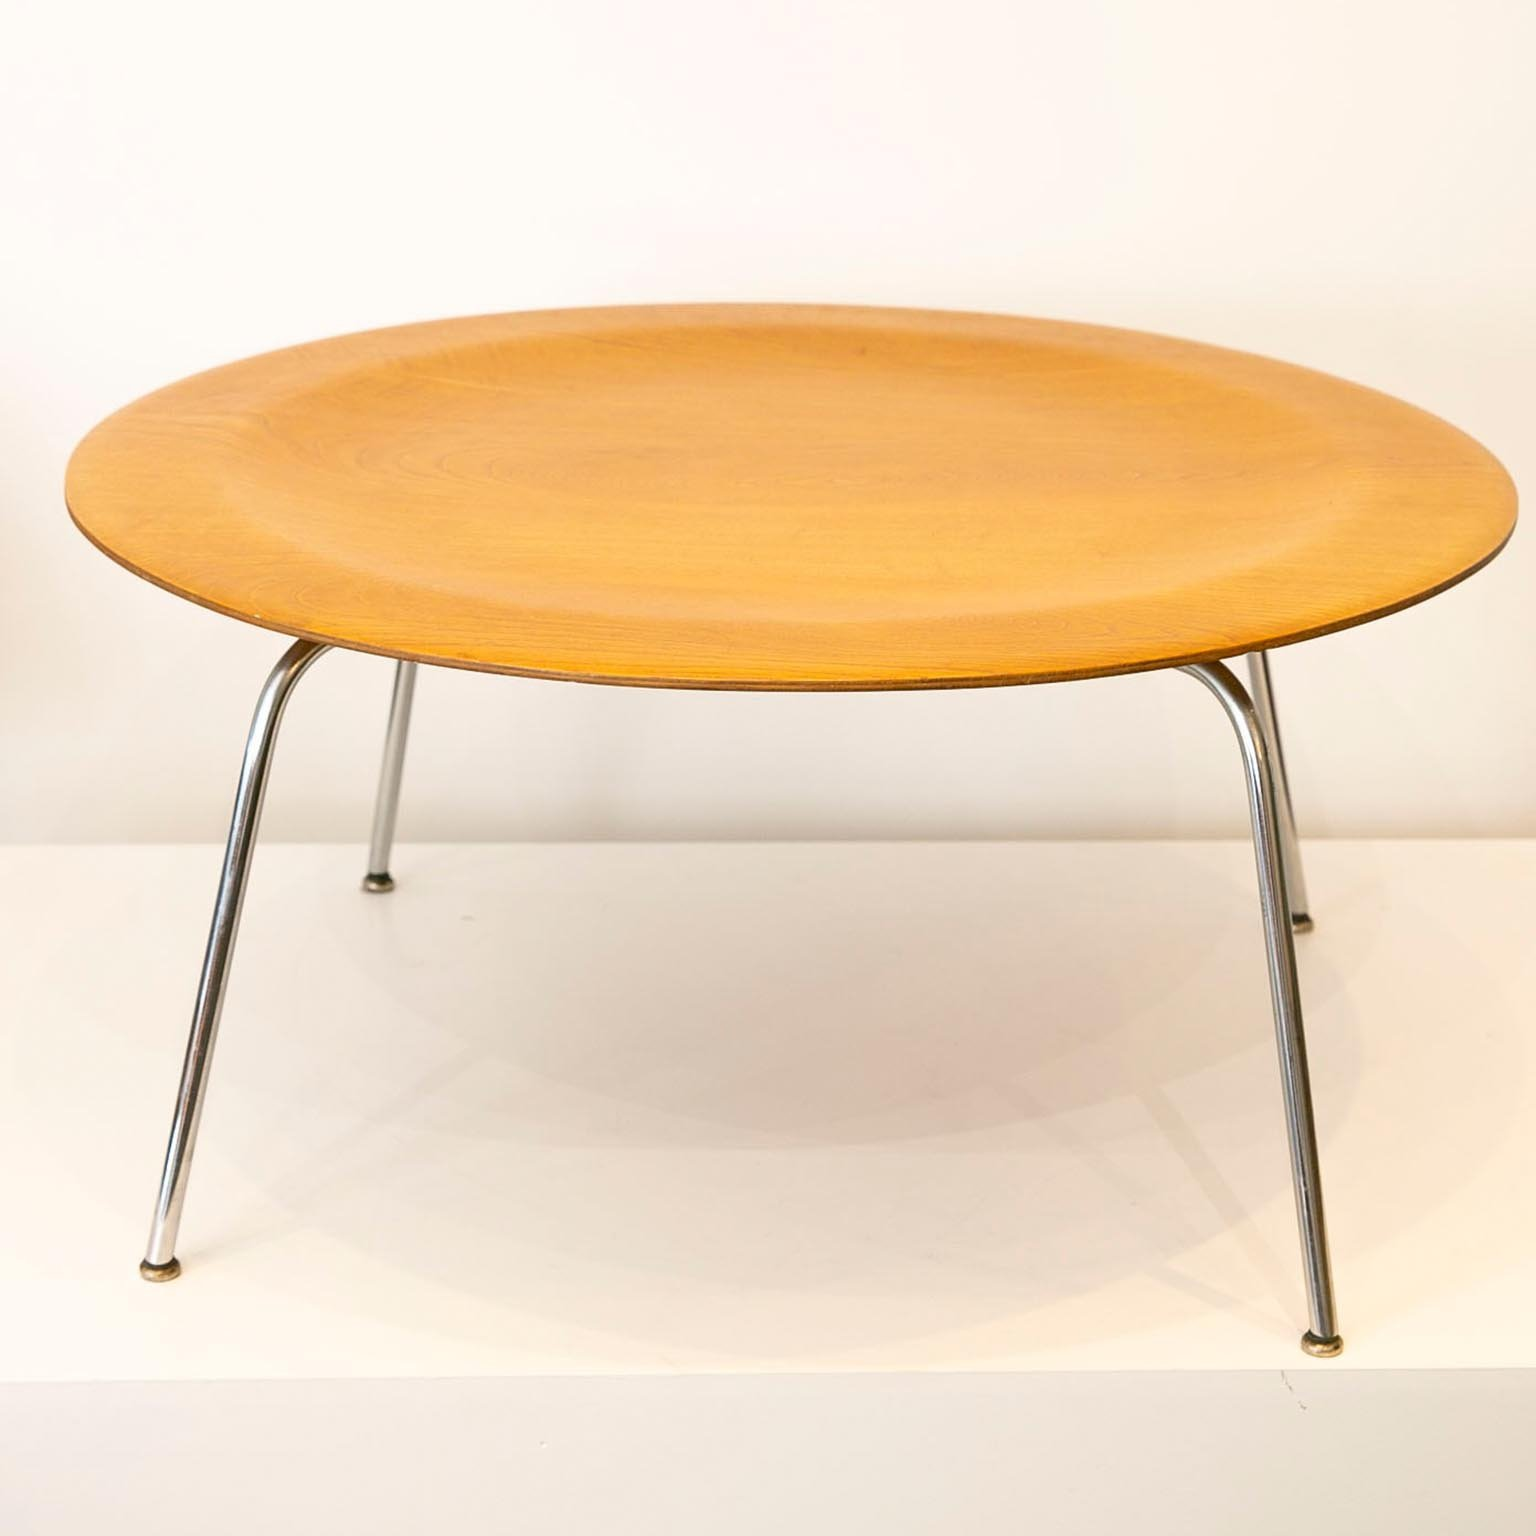 Third Generation Ctm Coffee Table By Charles Ray Eames For Herman Miller Early 50 S 159378